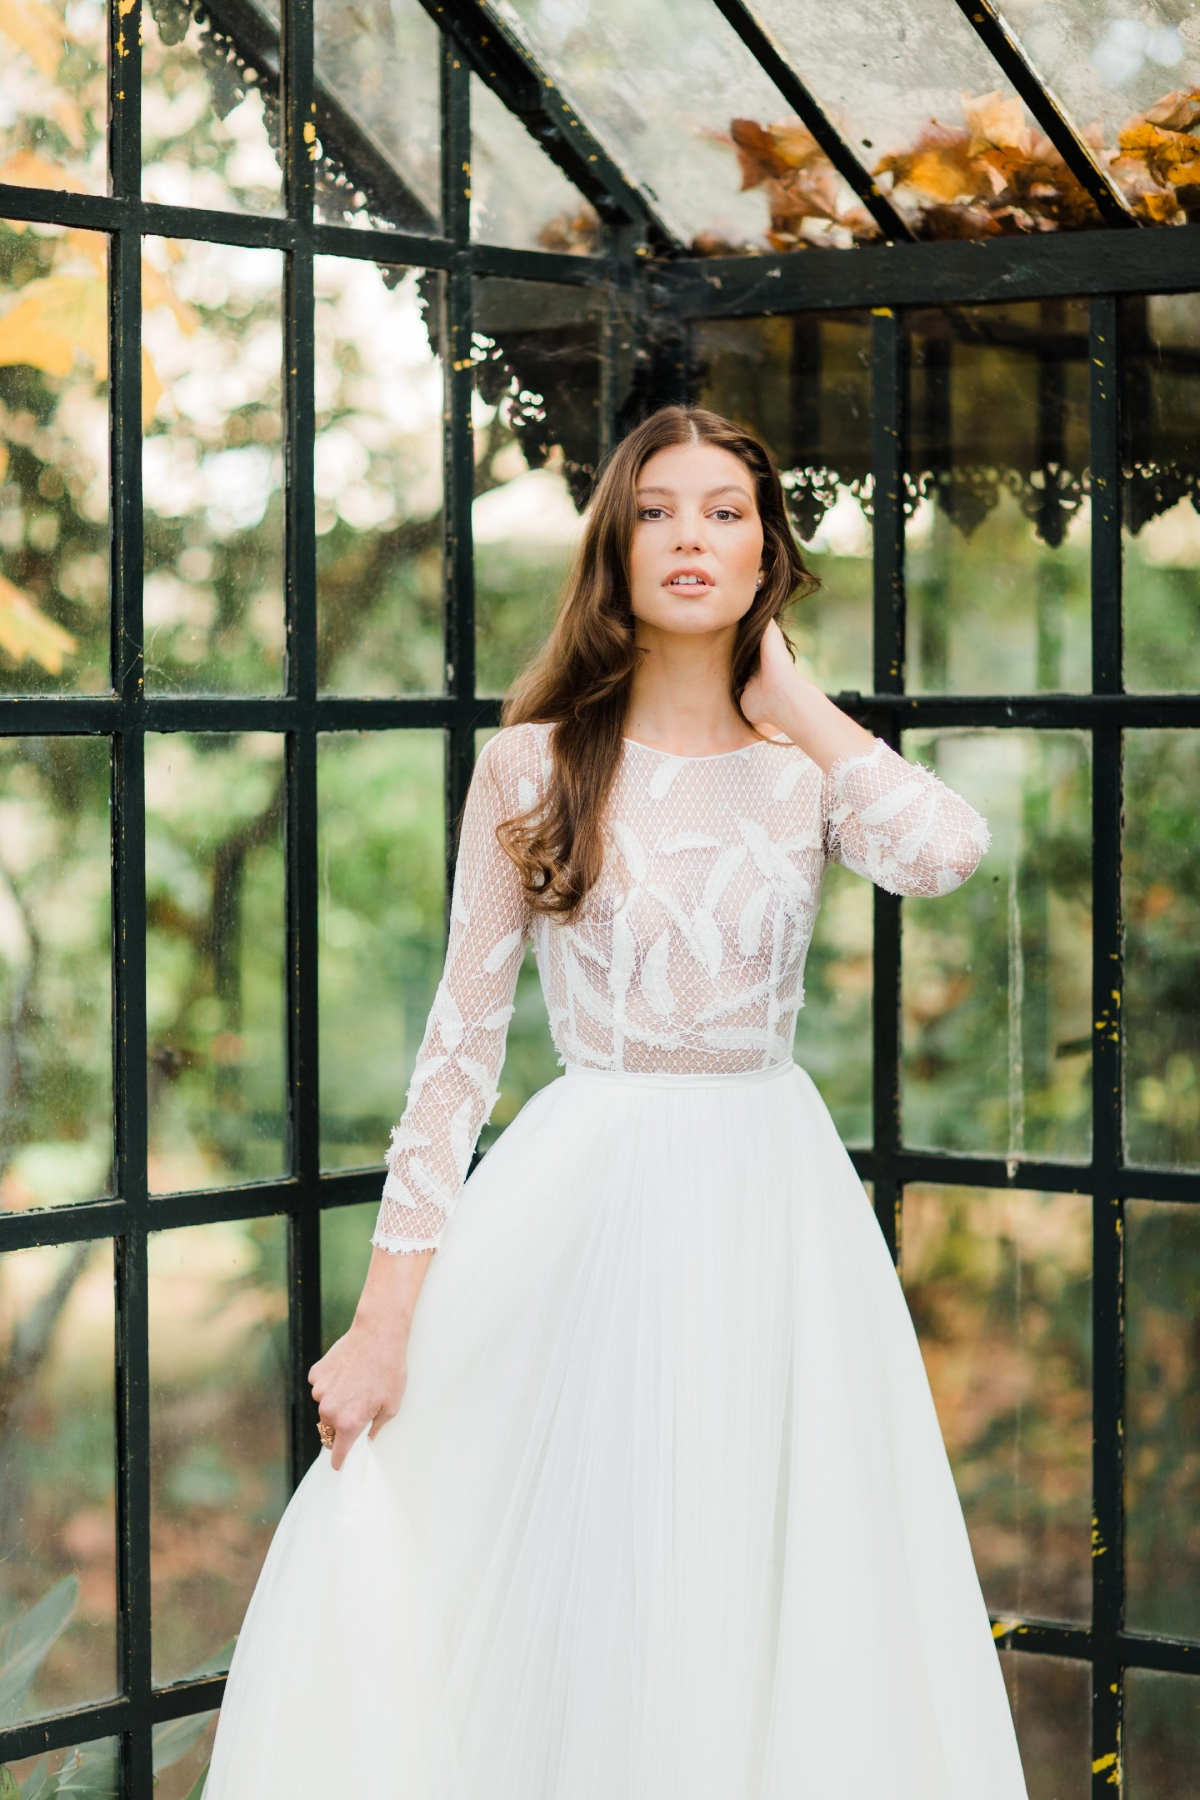 Gio Rodrigues Bridal Spring 2019 Lima